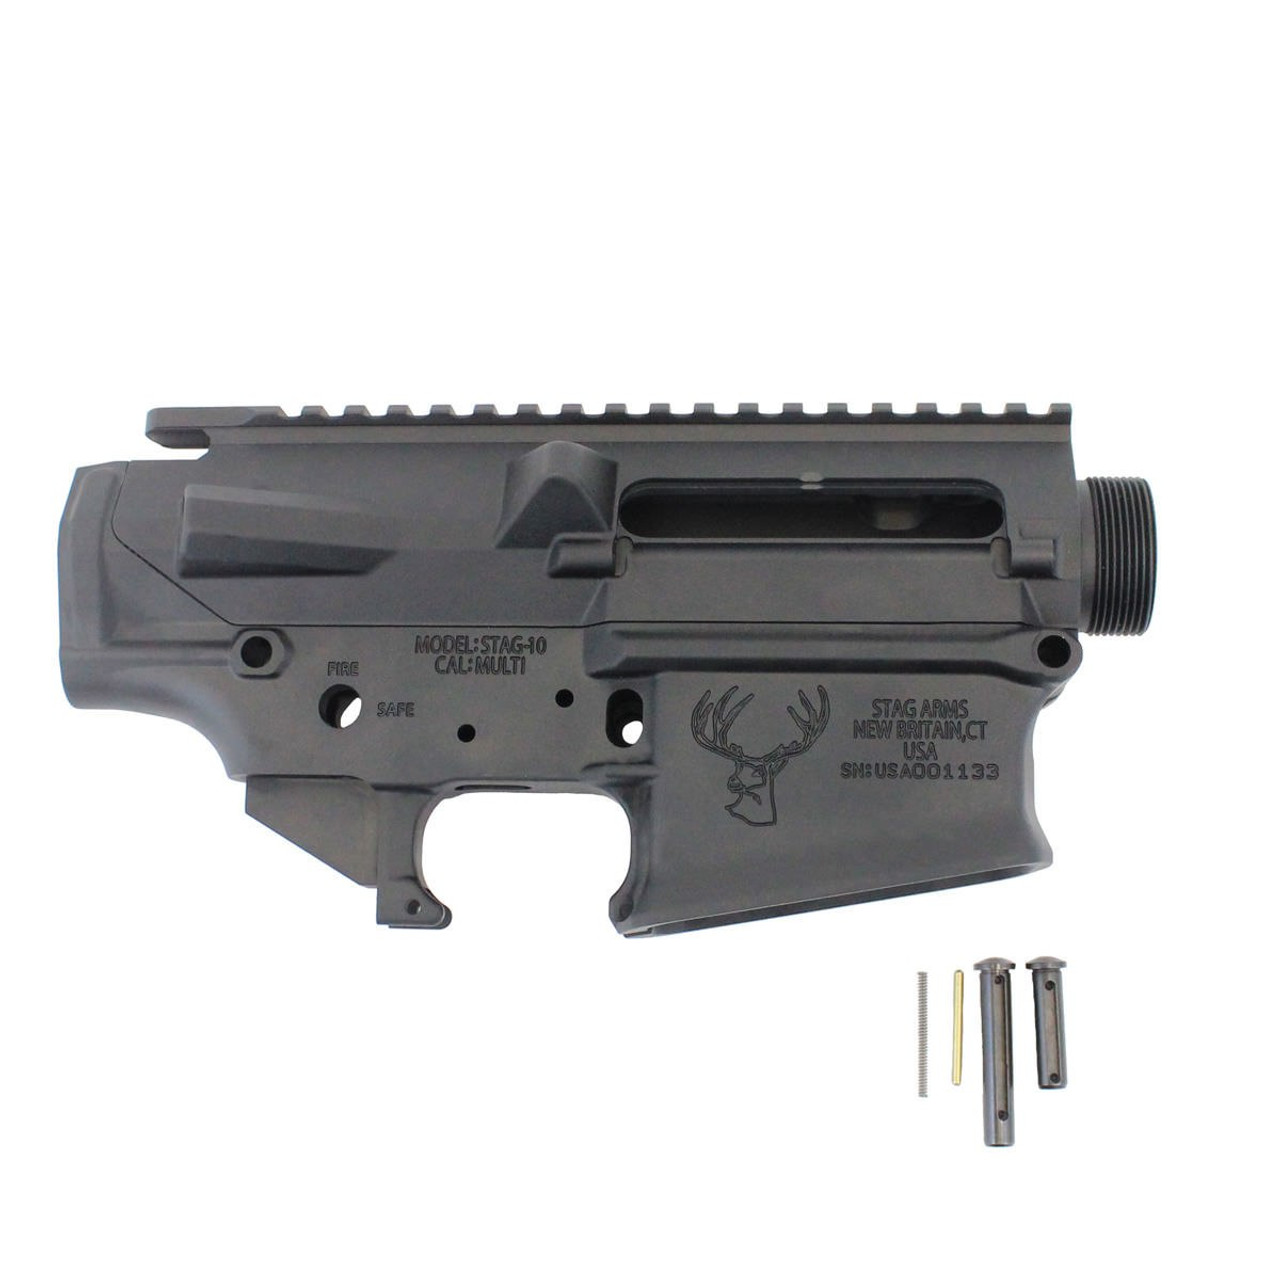 Stag 10 Stripped Upper / Lower Combo (Non-Restricted) Blem